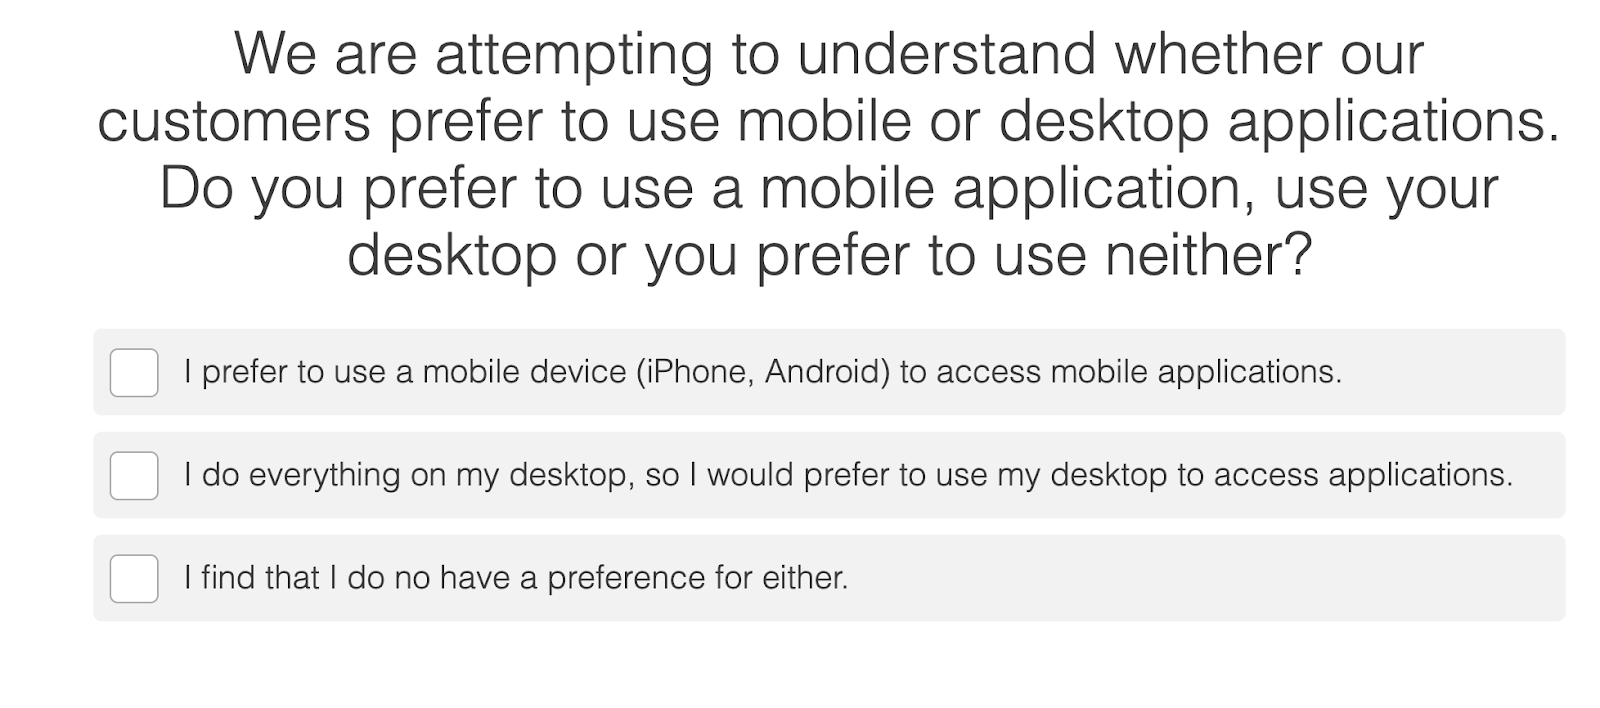 quiz question with a very wordy question about what type of device you prefer to access sites